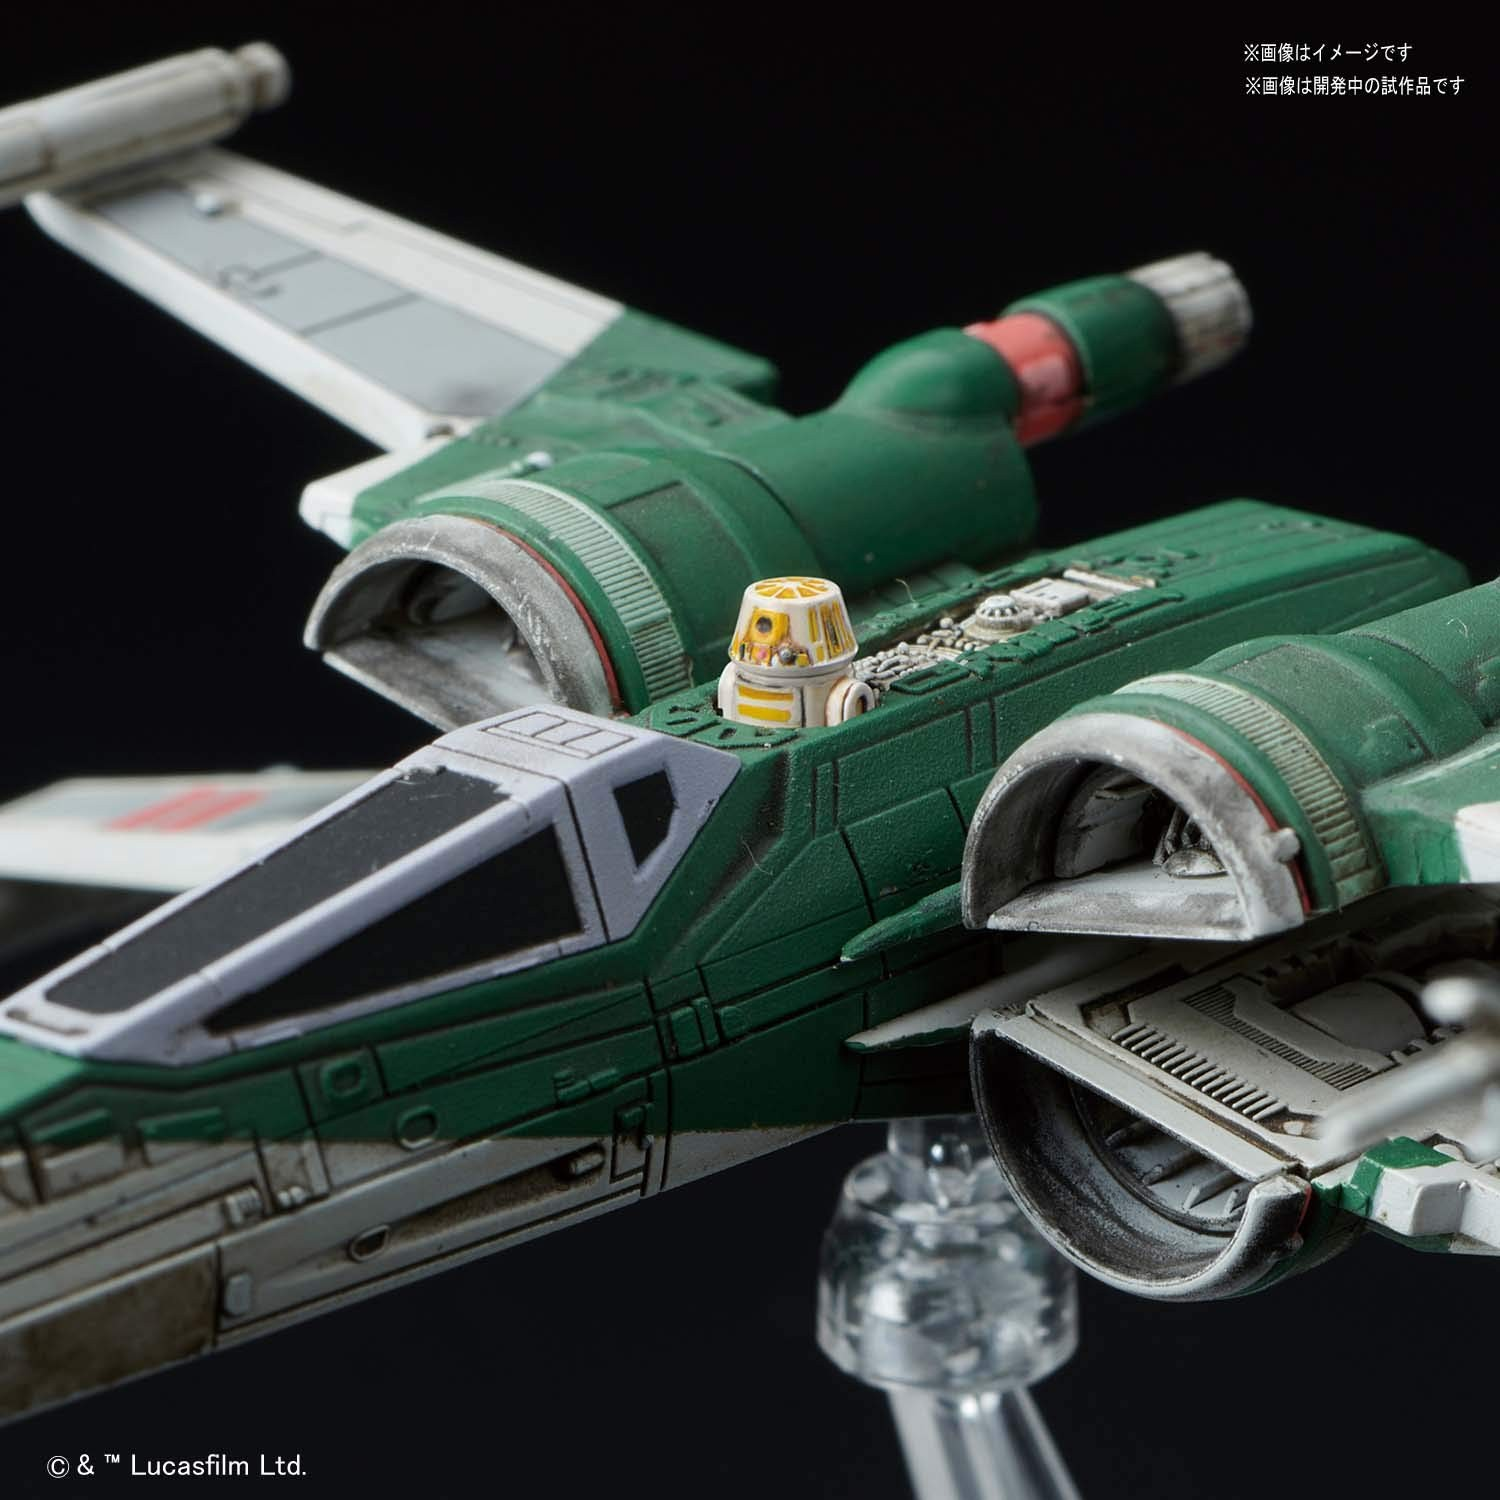 Bandai Vehicle Model Poe S X Wing Fighter X Wing Fighter The Rise Of Skywalker Trackable Shipping Japan New Export From Japan Zipang Hobby